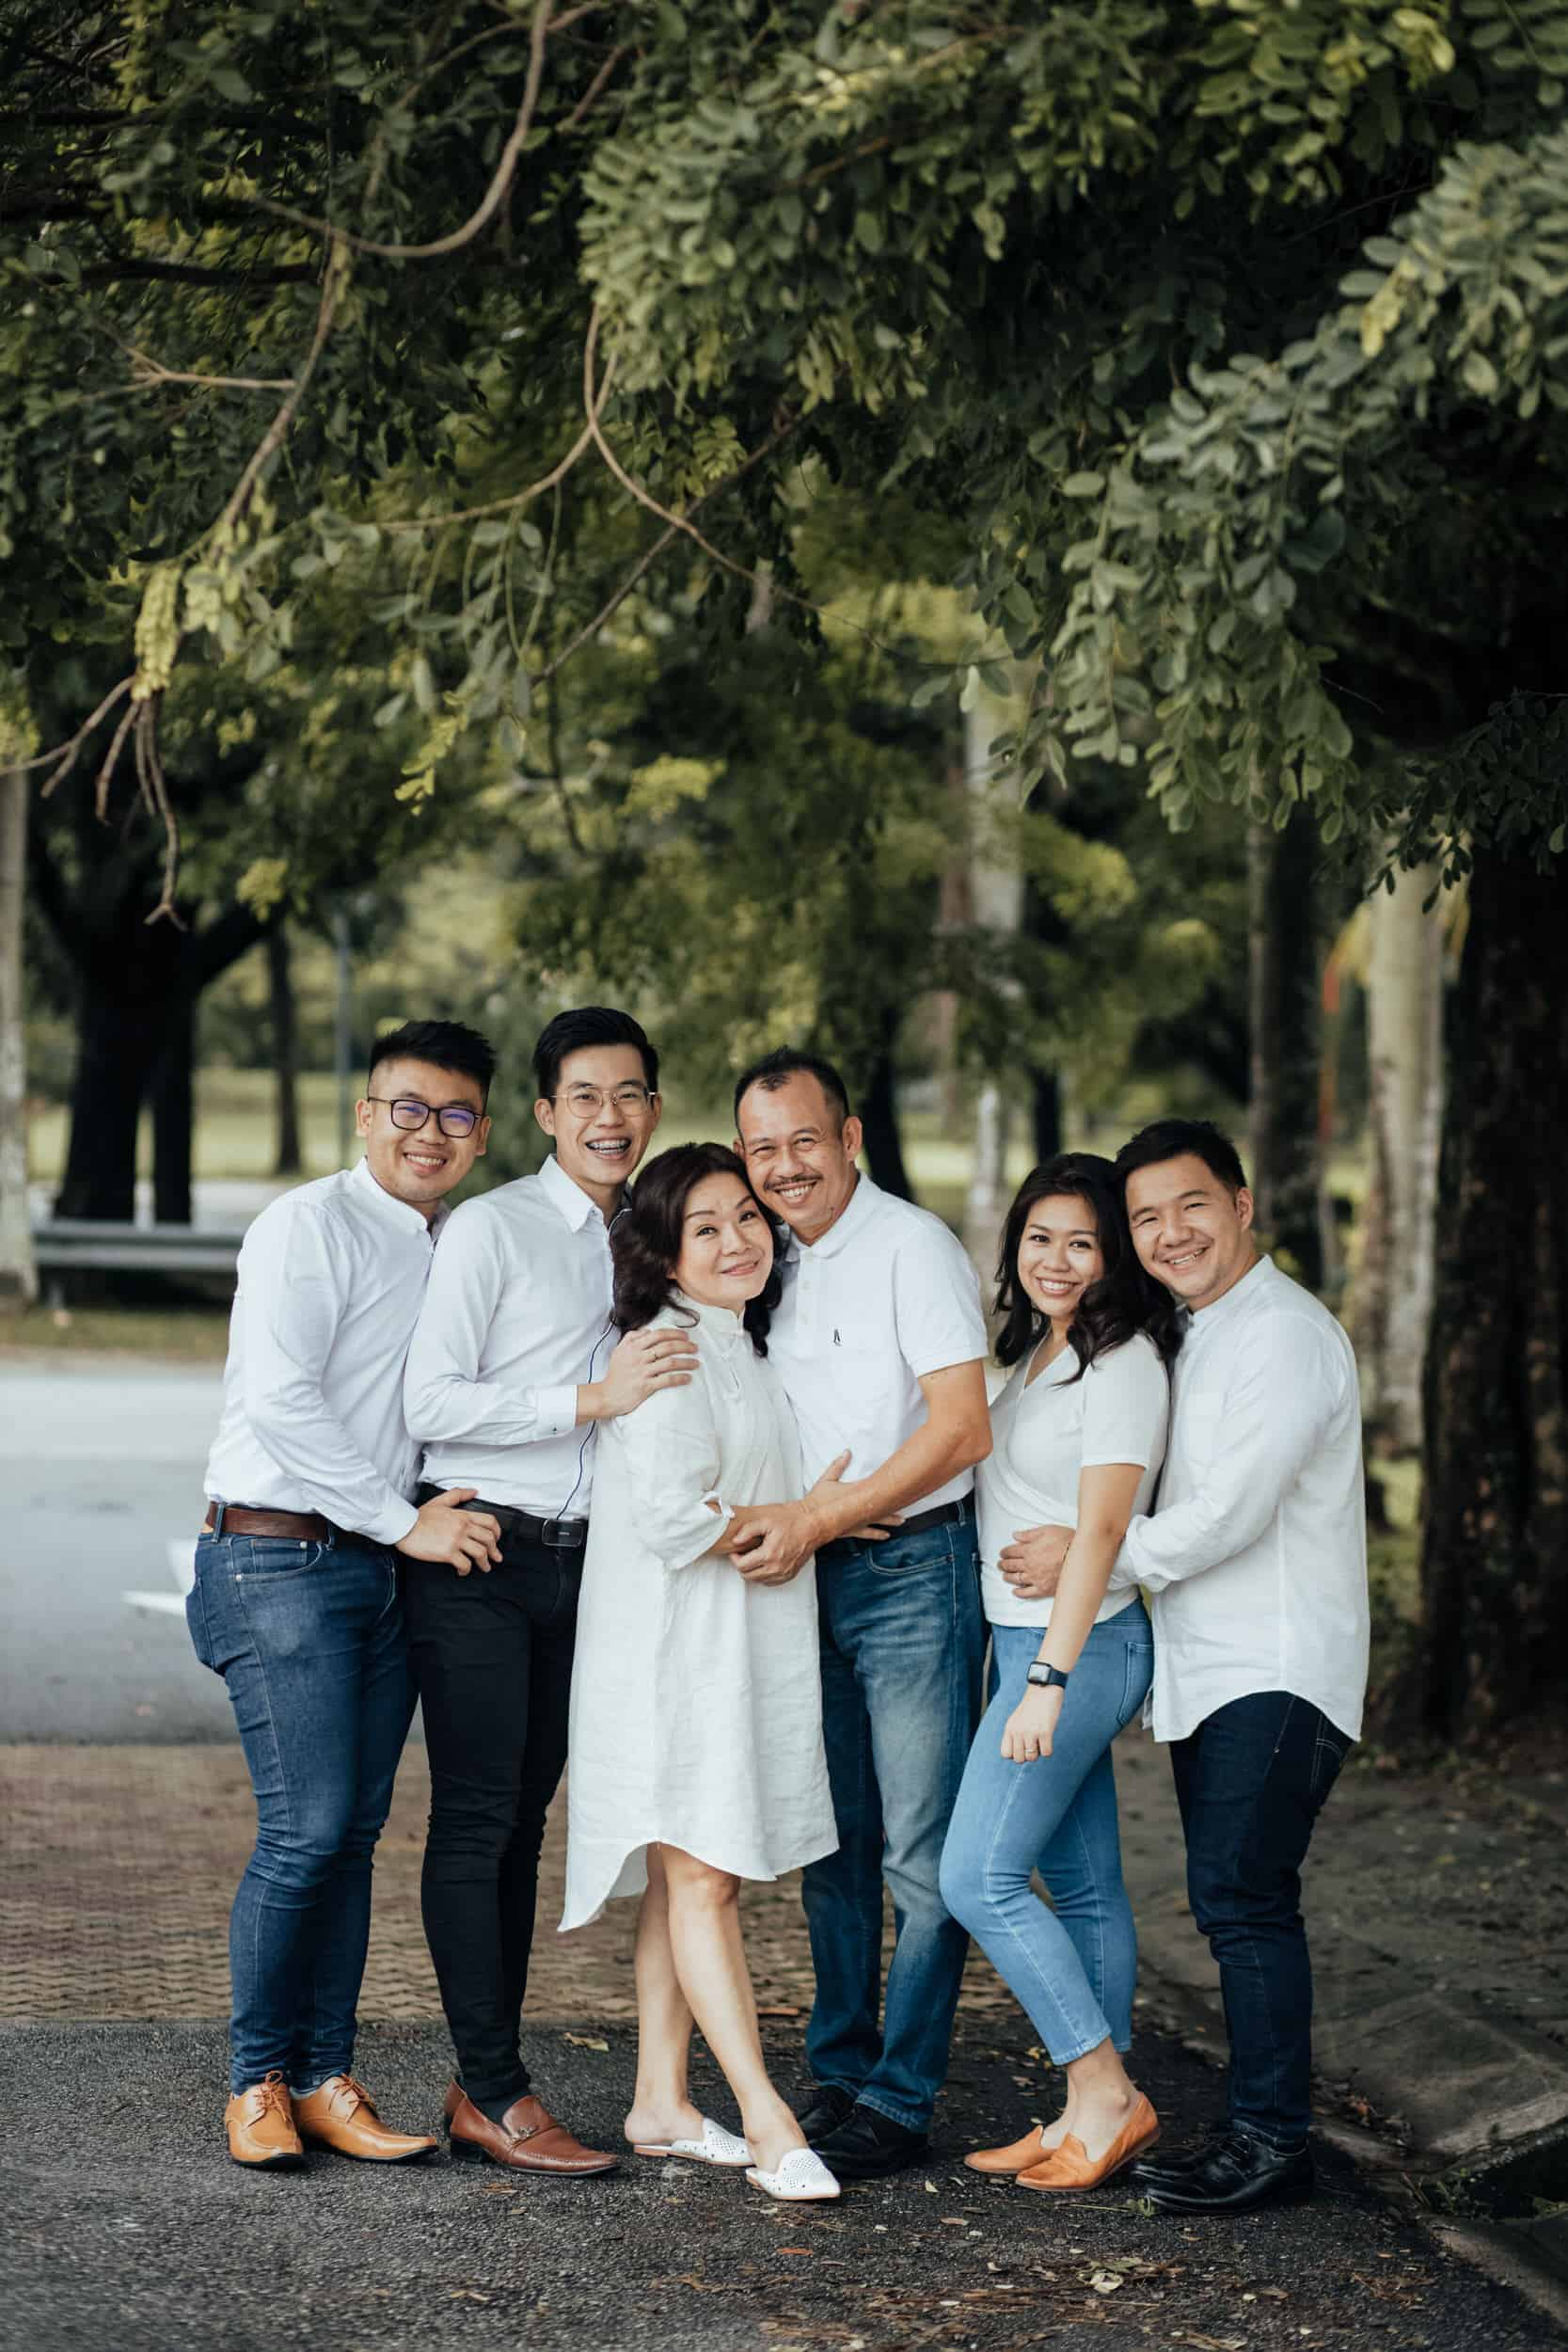 Kuala Lumpur Outdoor Family Portrait Casual Leisure Happy Sesson